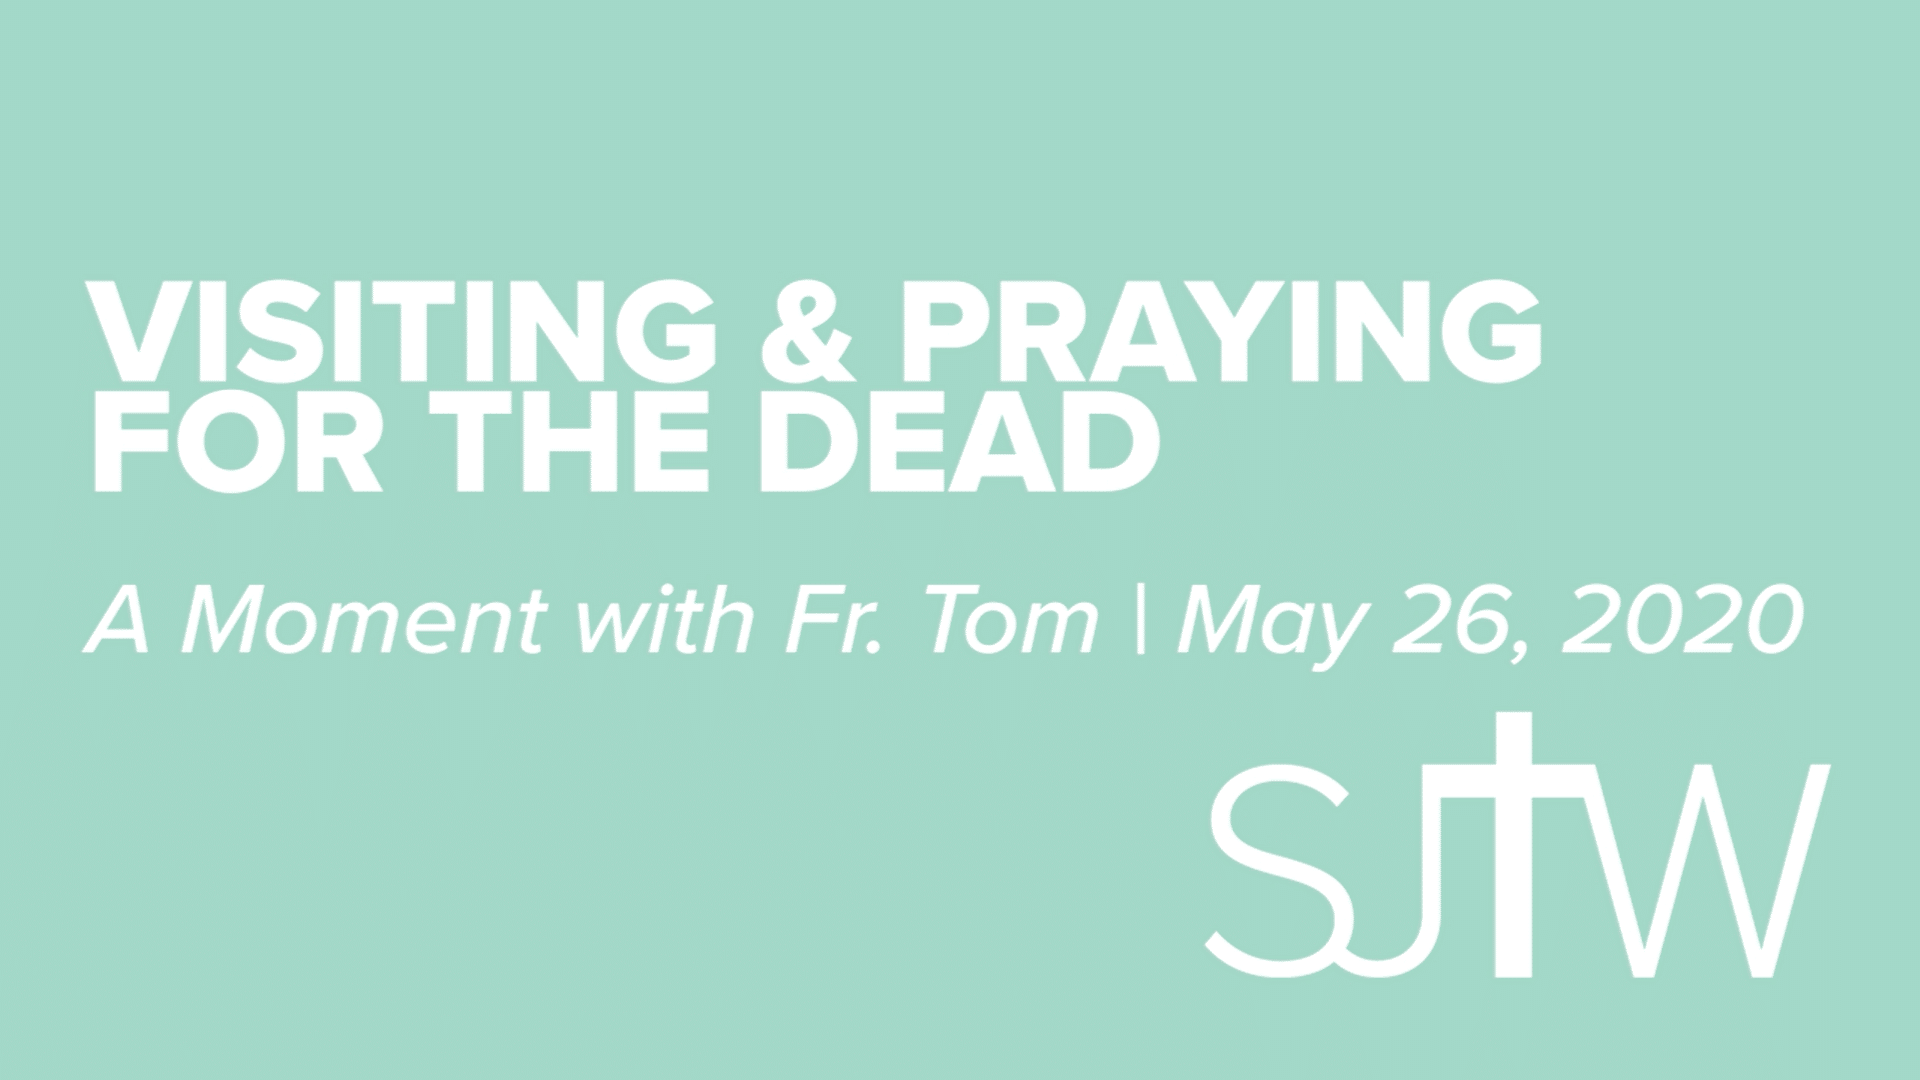 Visiting & Praying for the Dead | A Moment with Father Tom